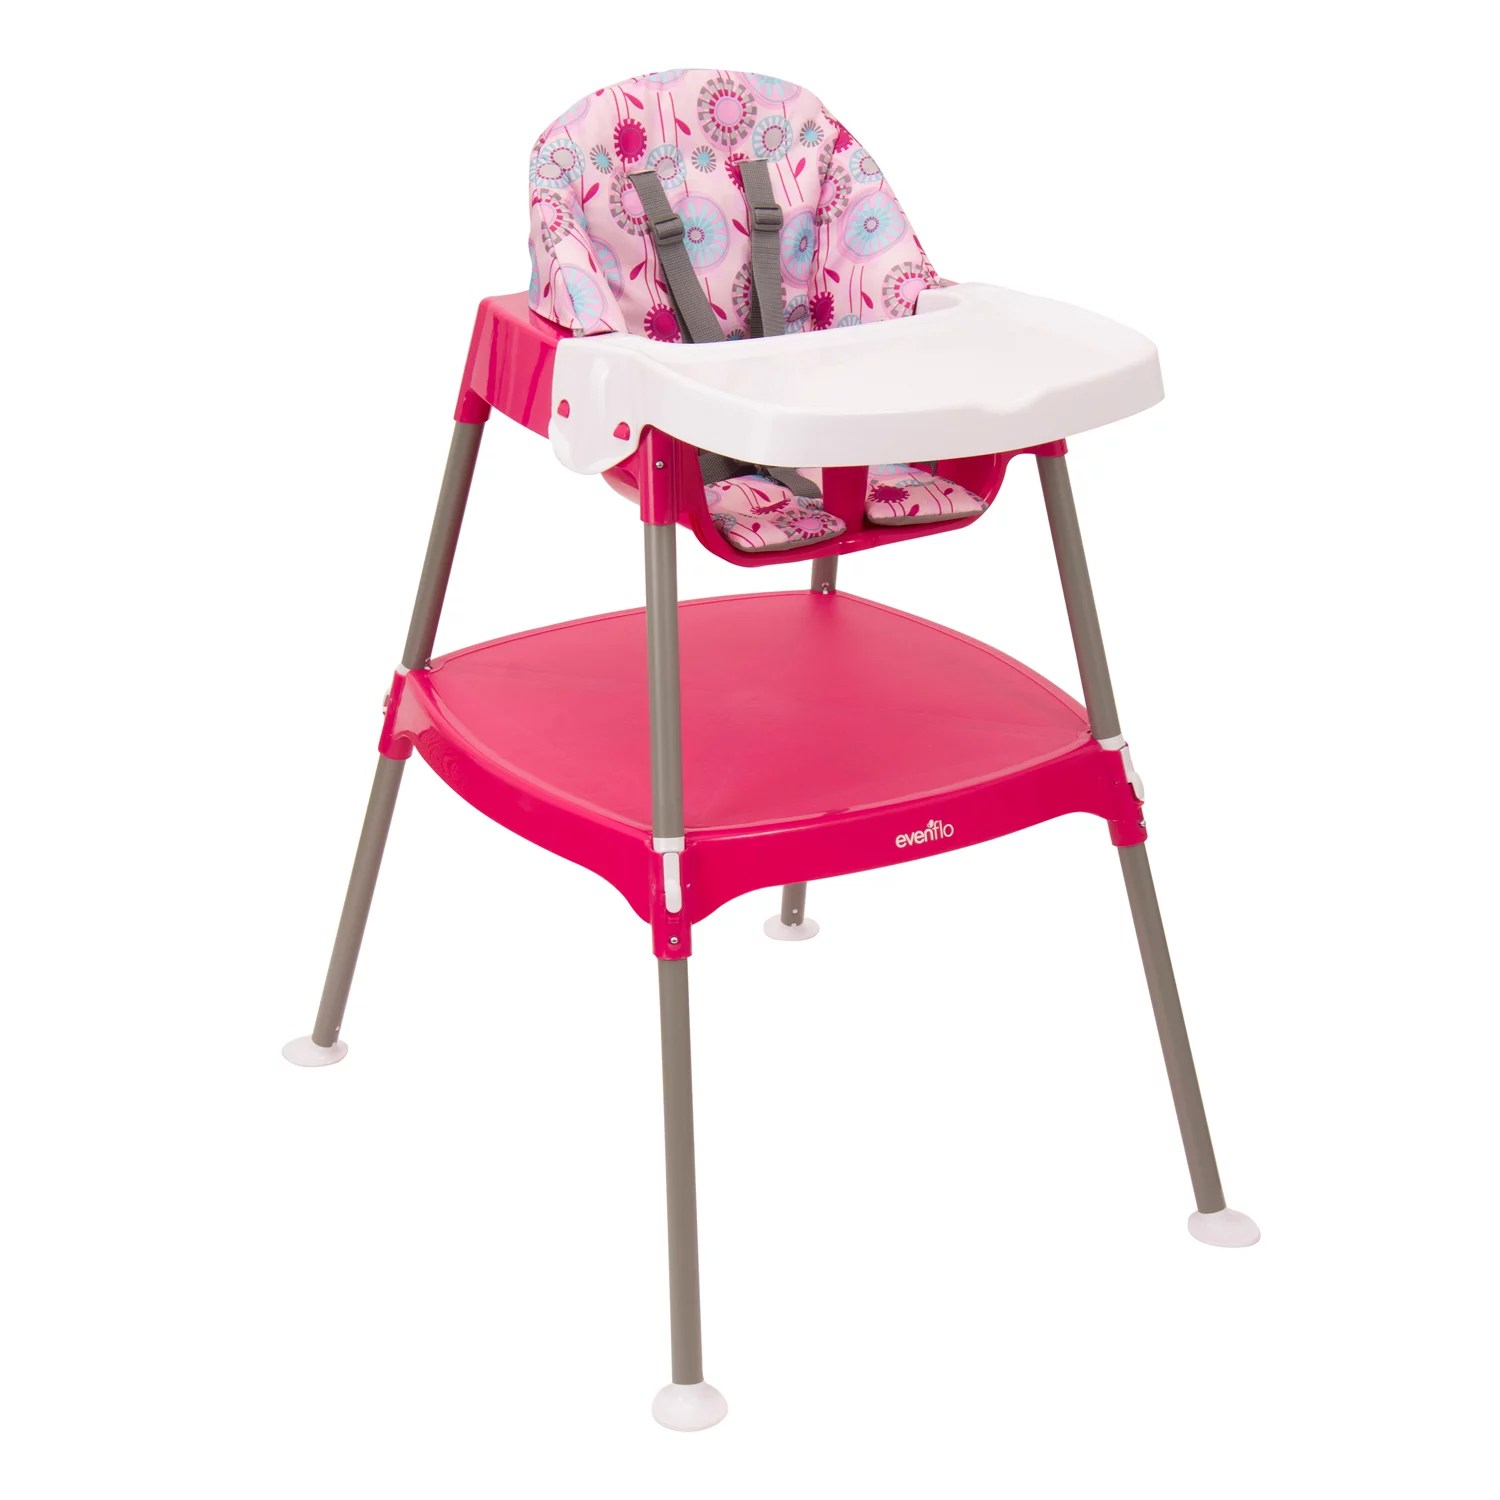 evenflo easy fold high chair best chairs recliner convertible 3 in 1